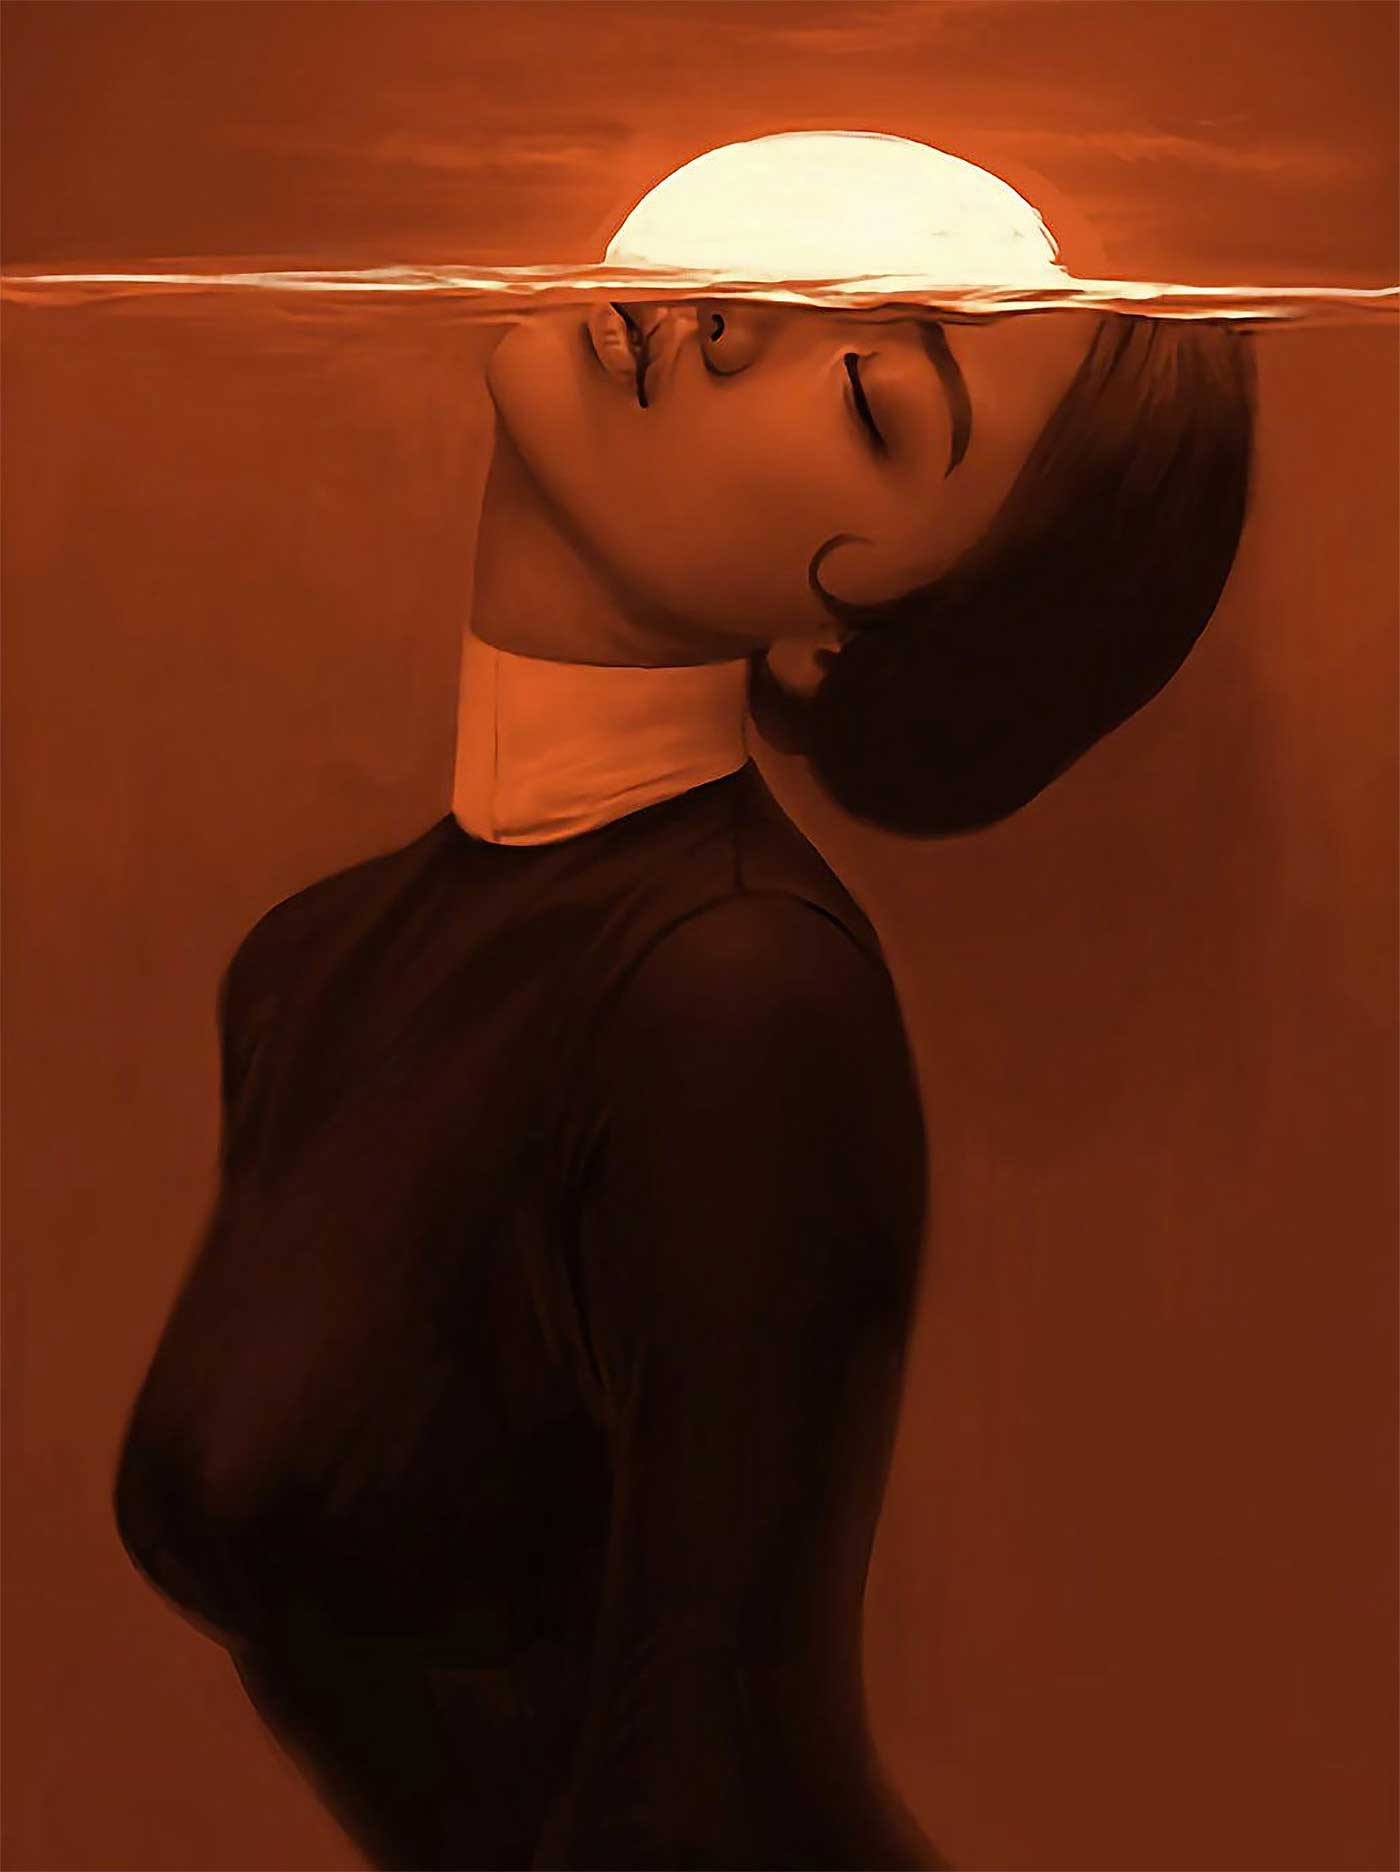 Neue surreale Digital Paintings von Aykut Aydogdu Aykut-Aydogdu-surreale-digital-paintings_2020_02